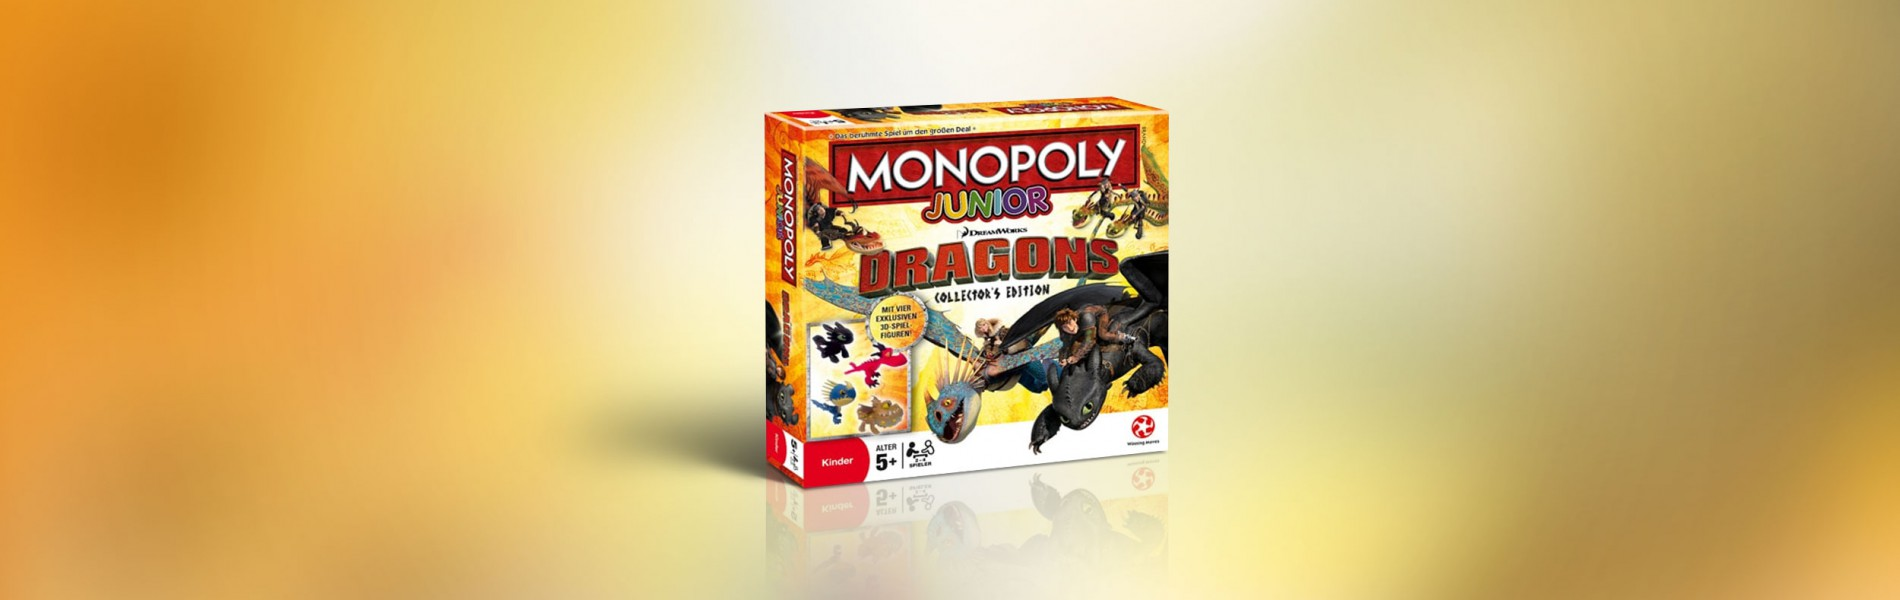 Monopoly Junior Dragons Collectors Edition